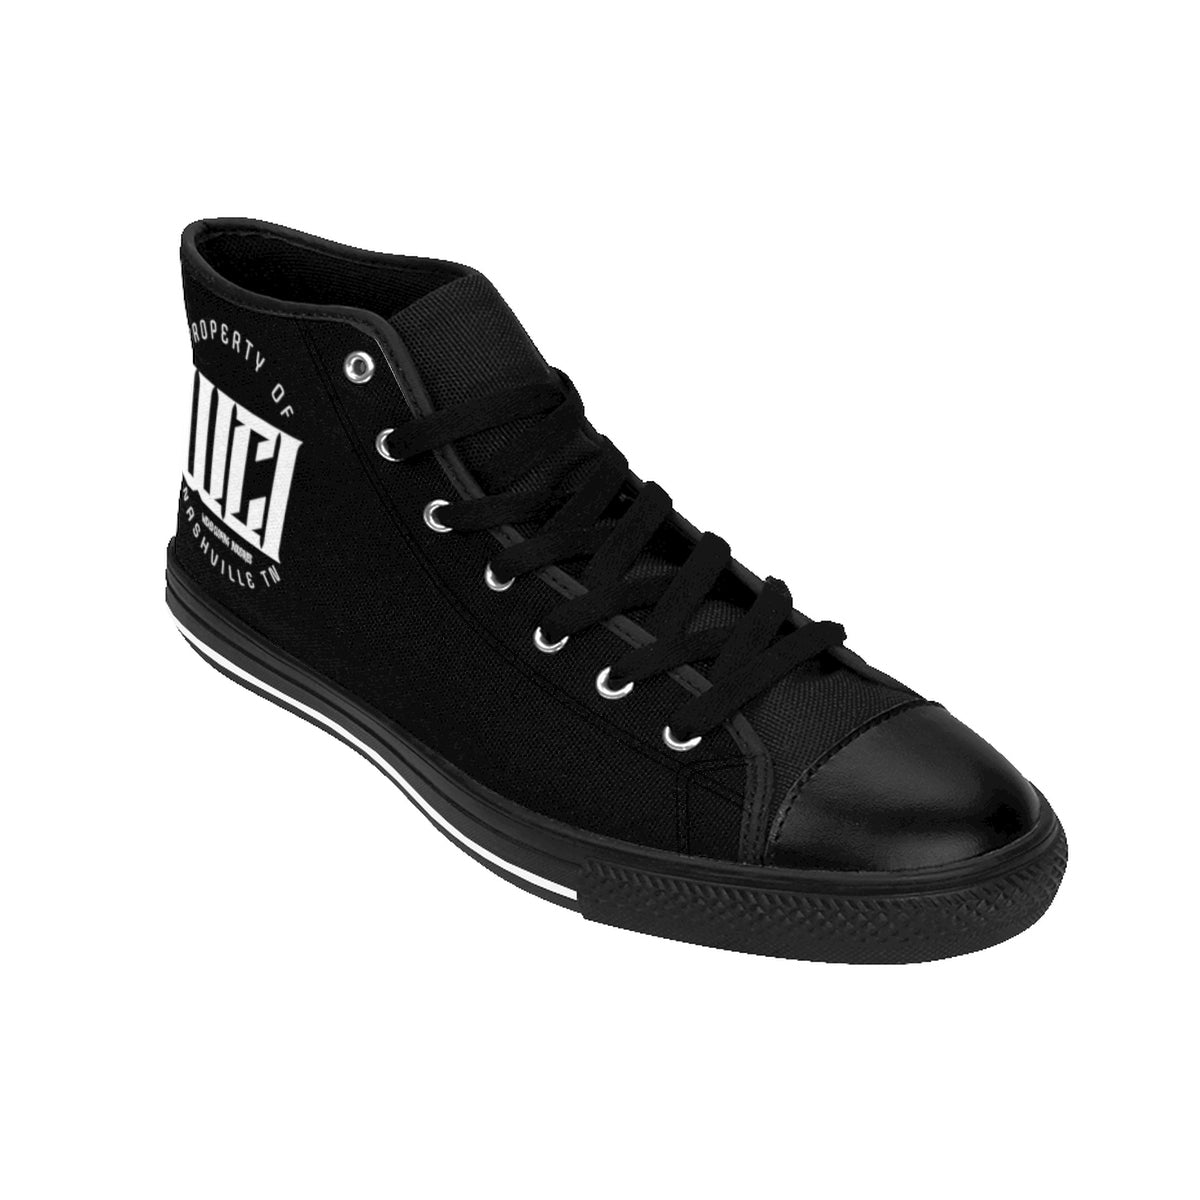 WCI/White/Women's High-top Sneakers